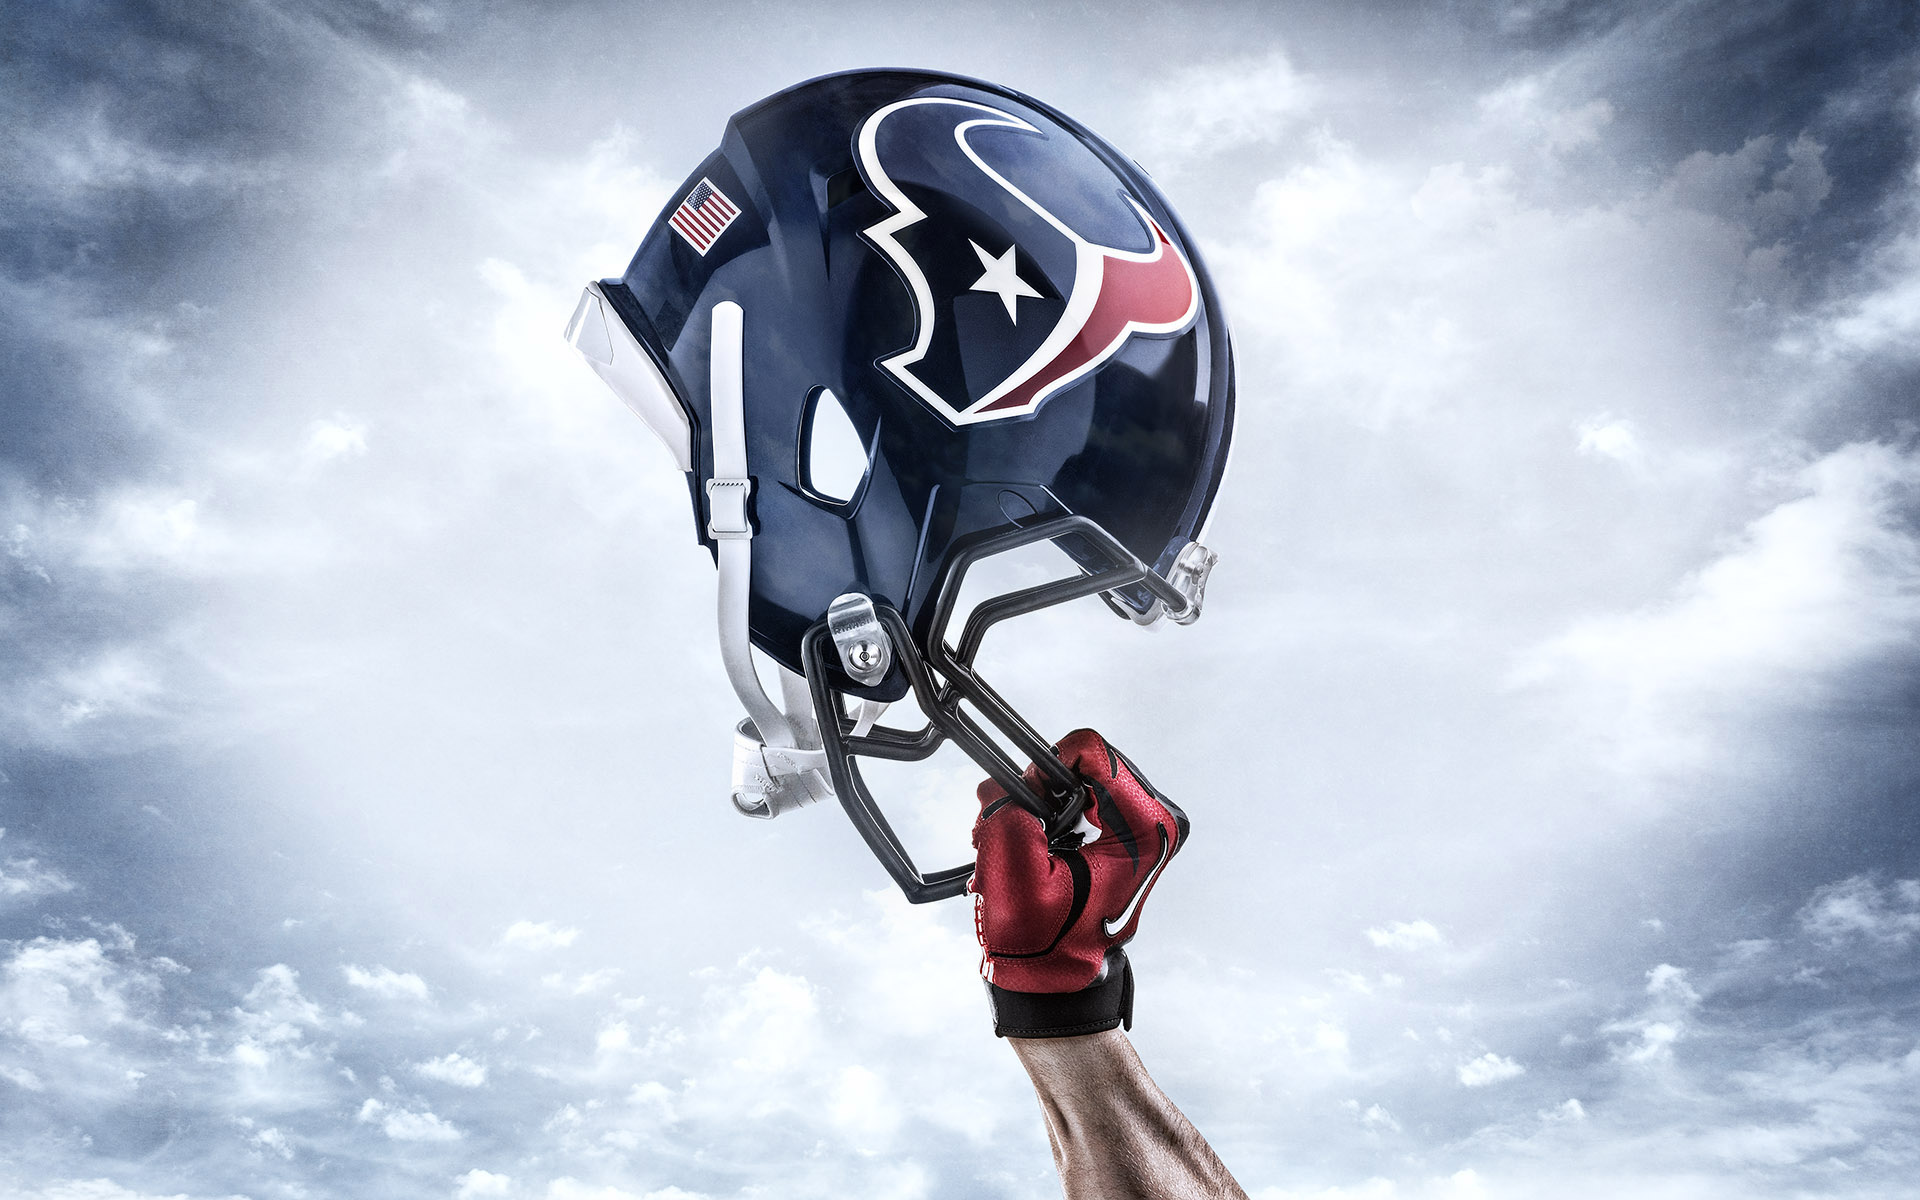 Coors Light Houston Texans NFL ©B Bunting